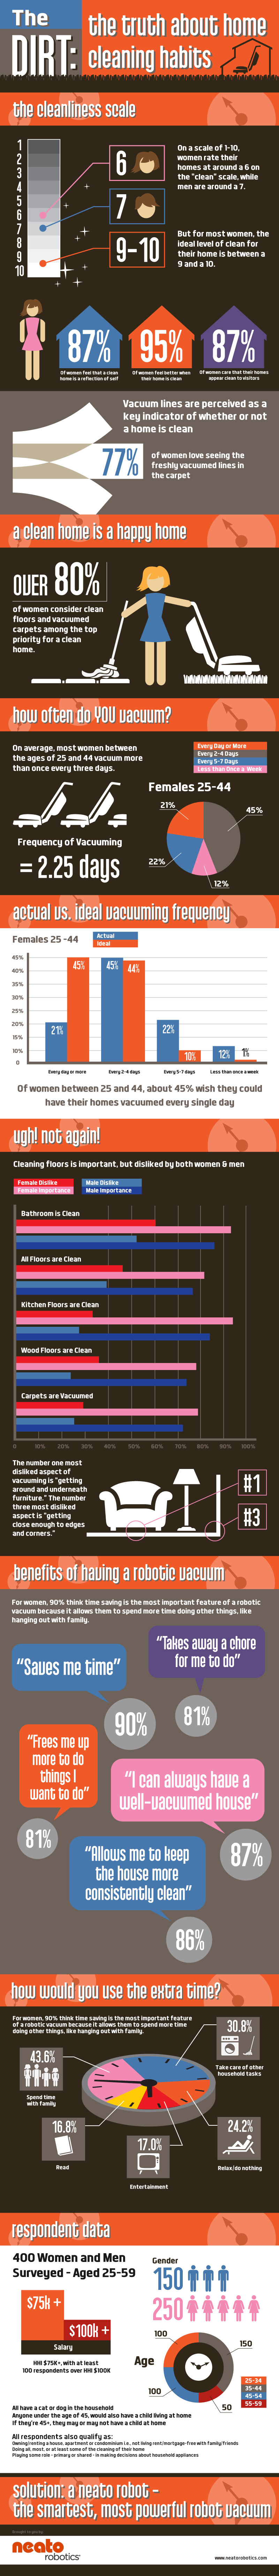 The Dirt: The Truth About Home Cleaning Habits